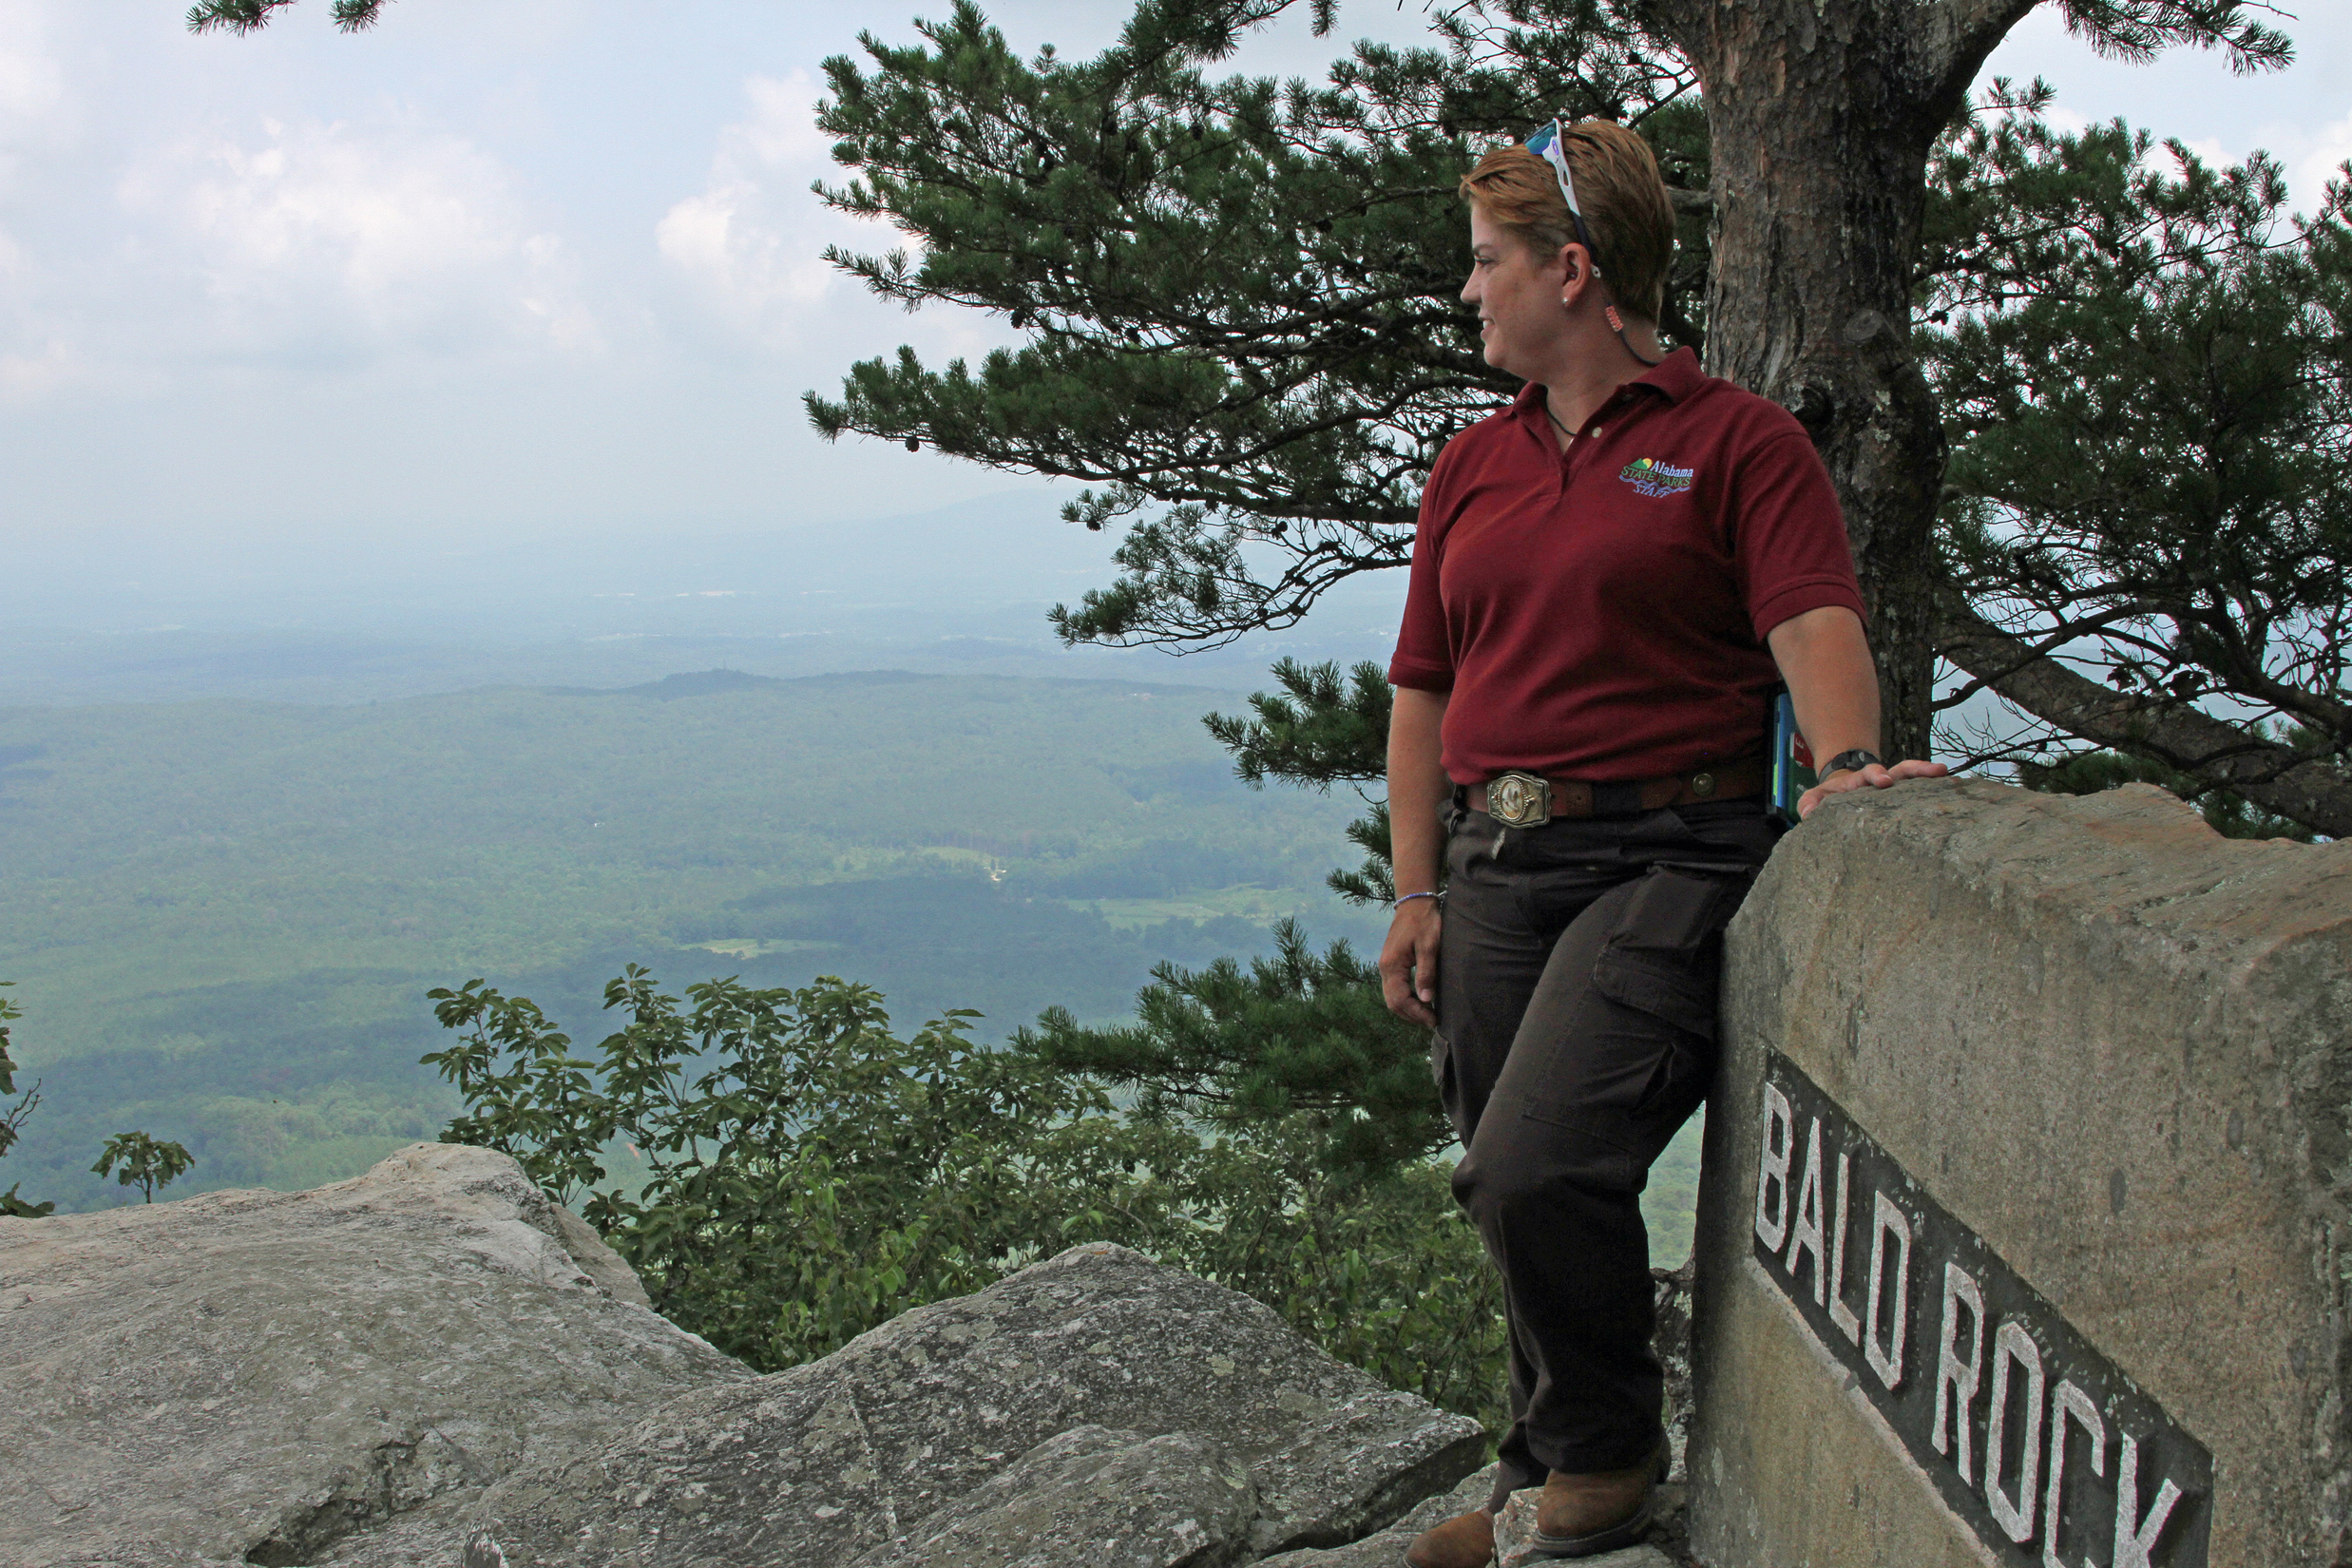 cheaha_to_meaher_016.jpg